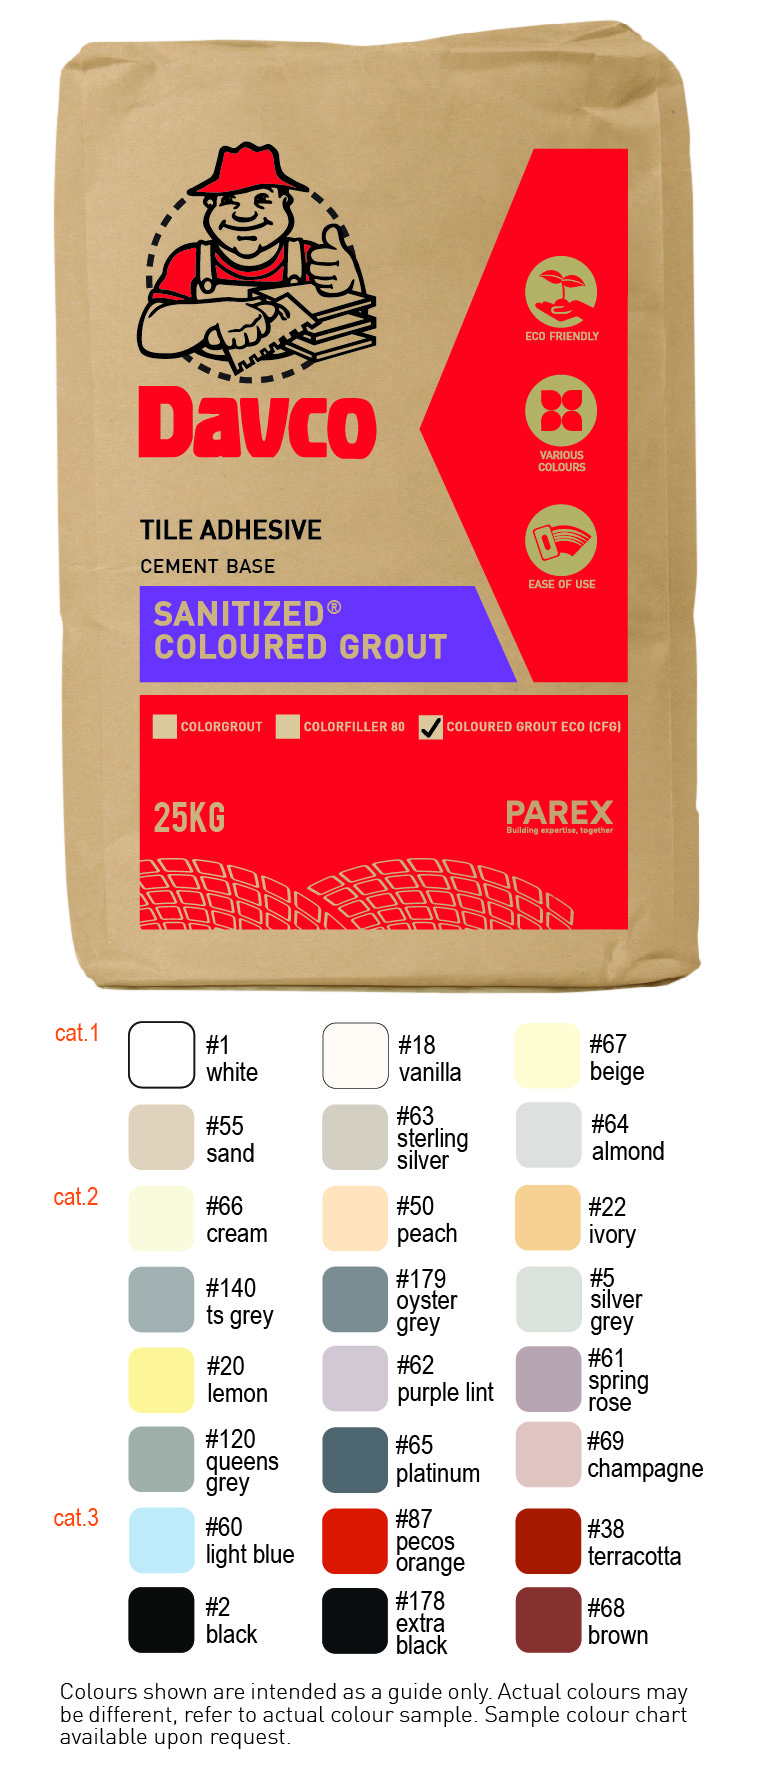 Davco Sanitized Colourgrout CFG ECO Technical Specification